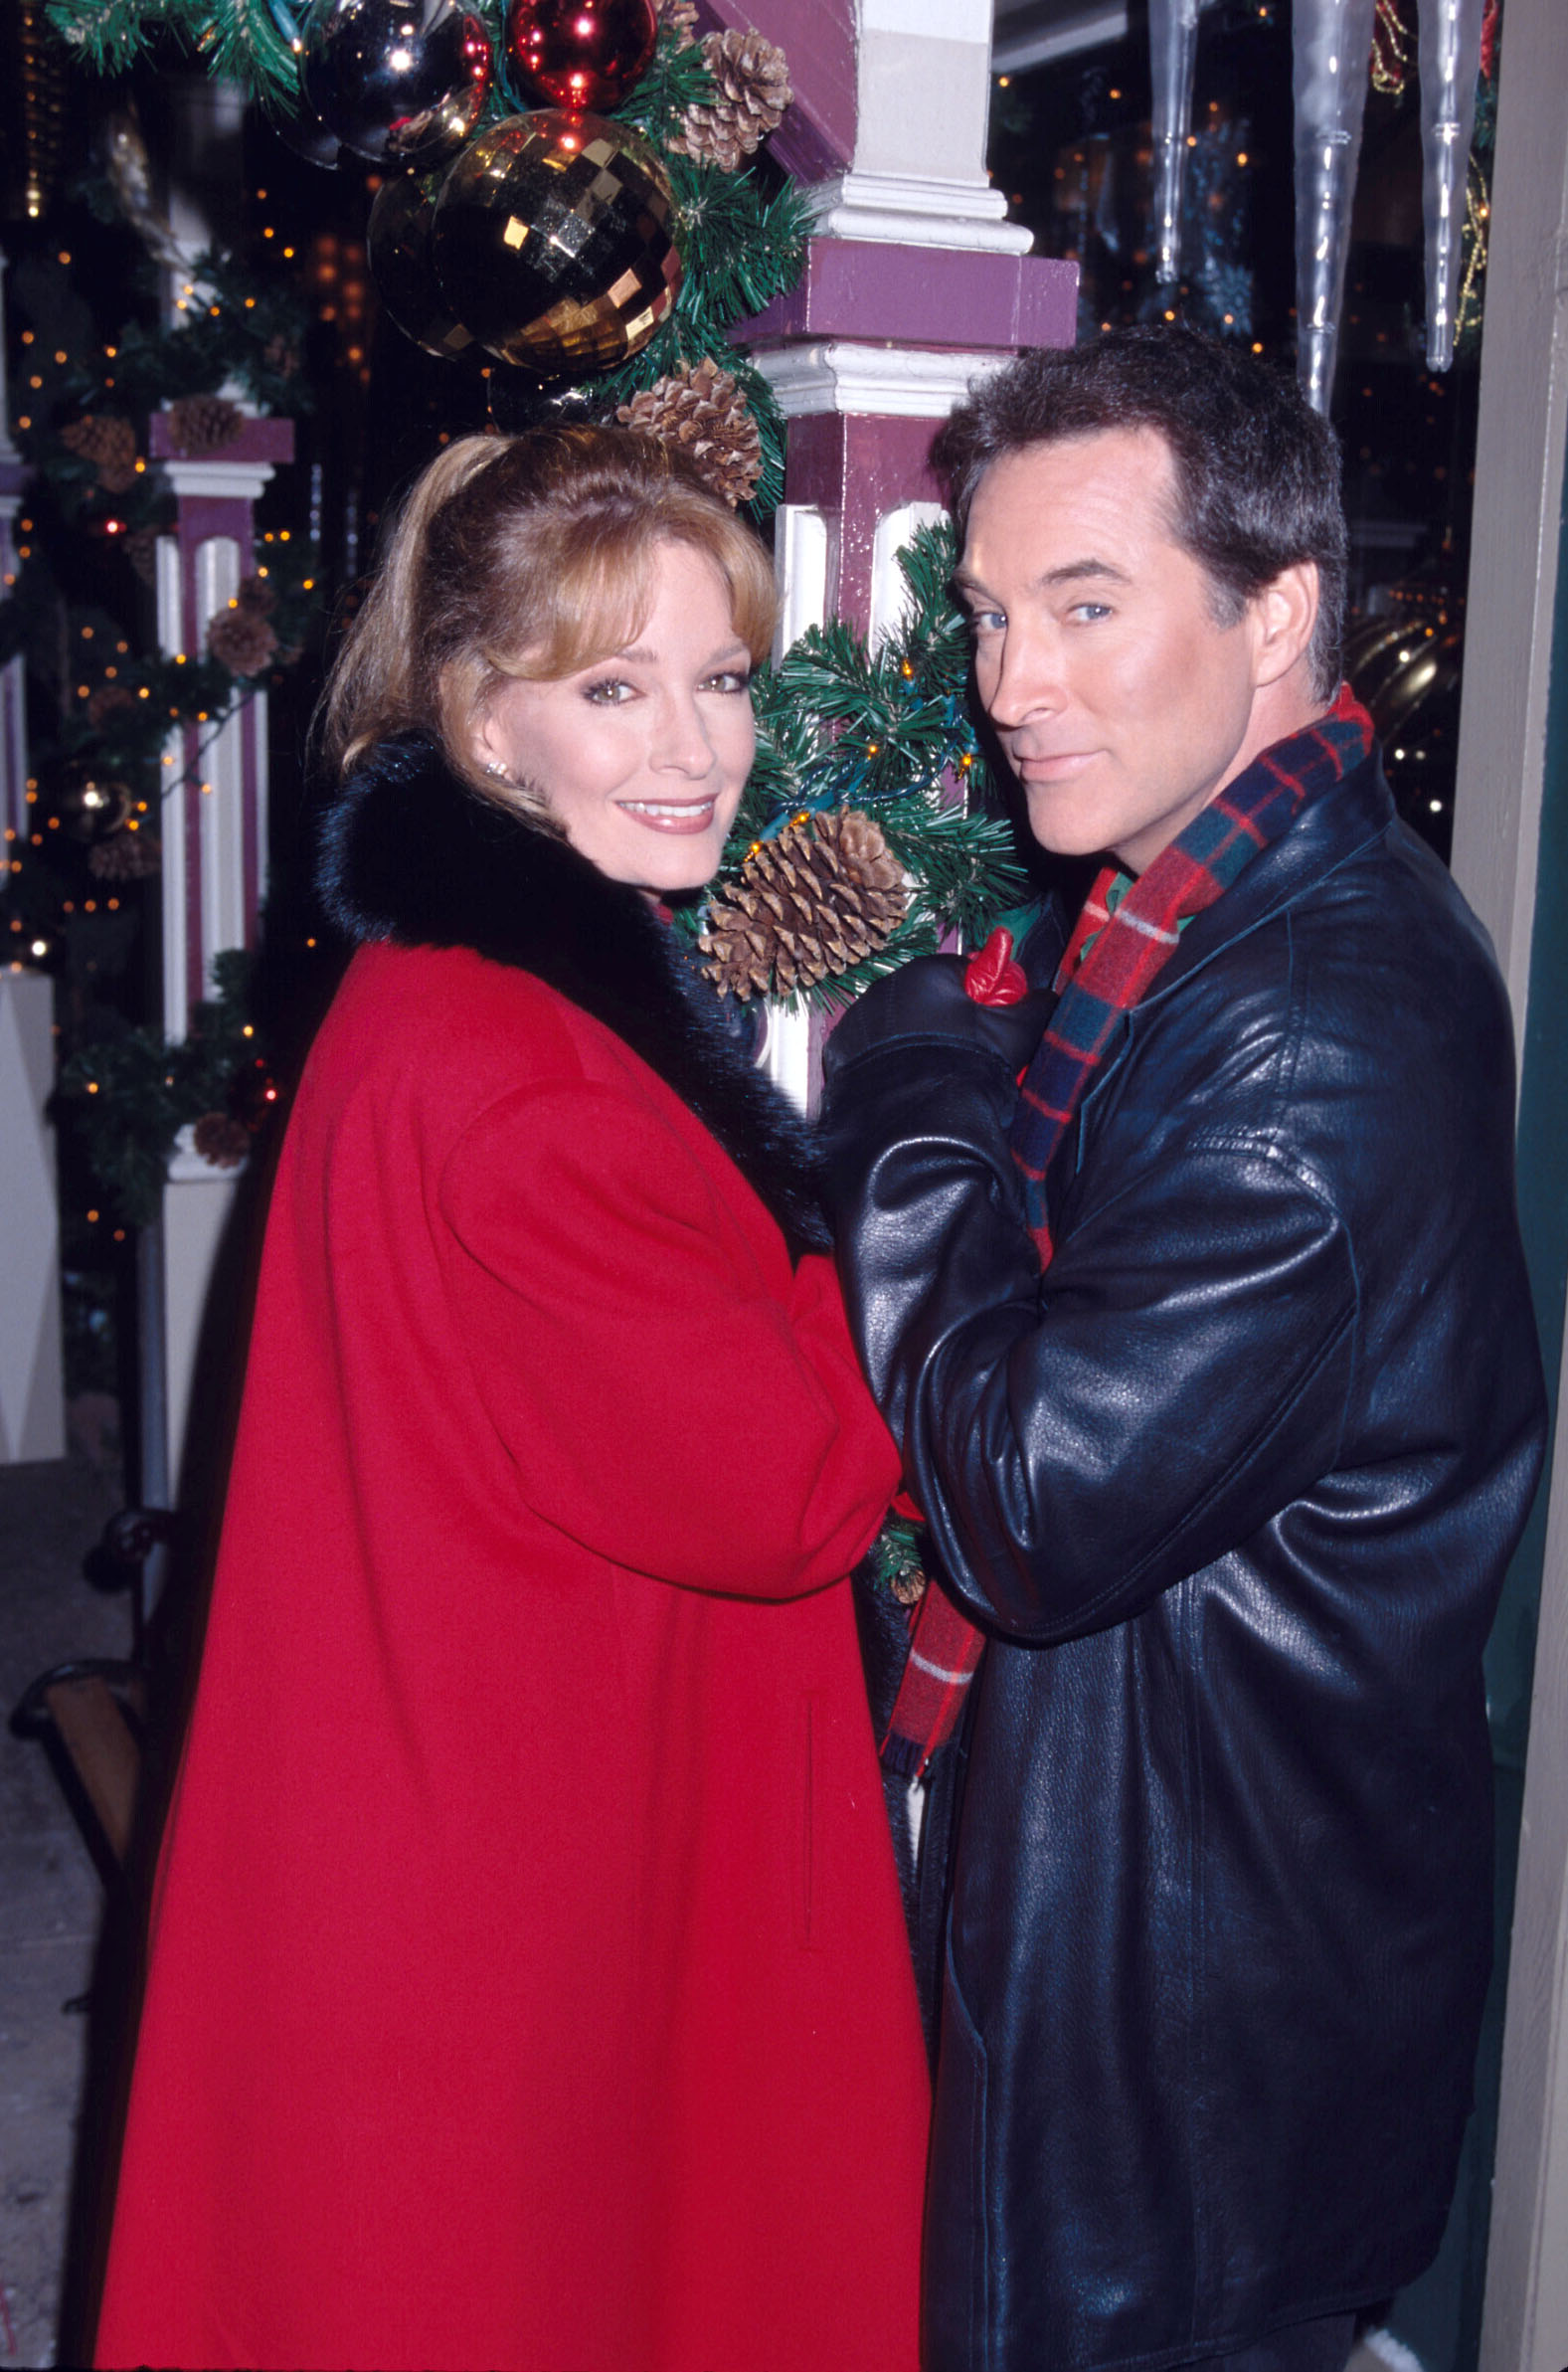 Merry Christmas from John and Marlena